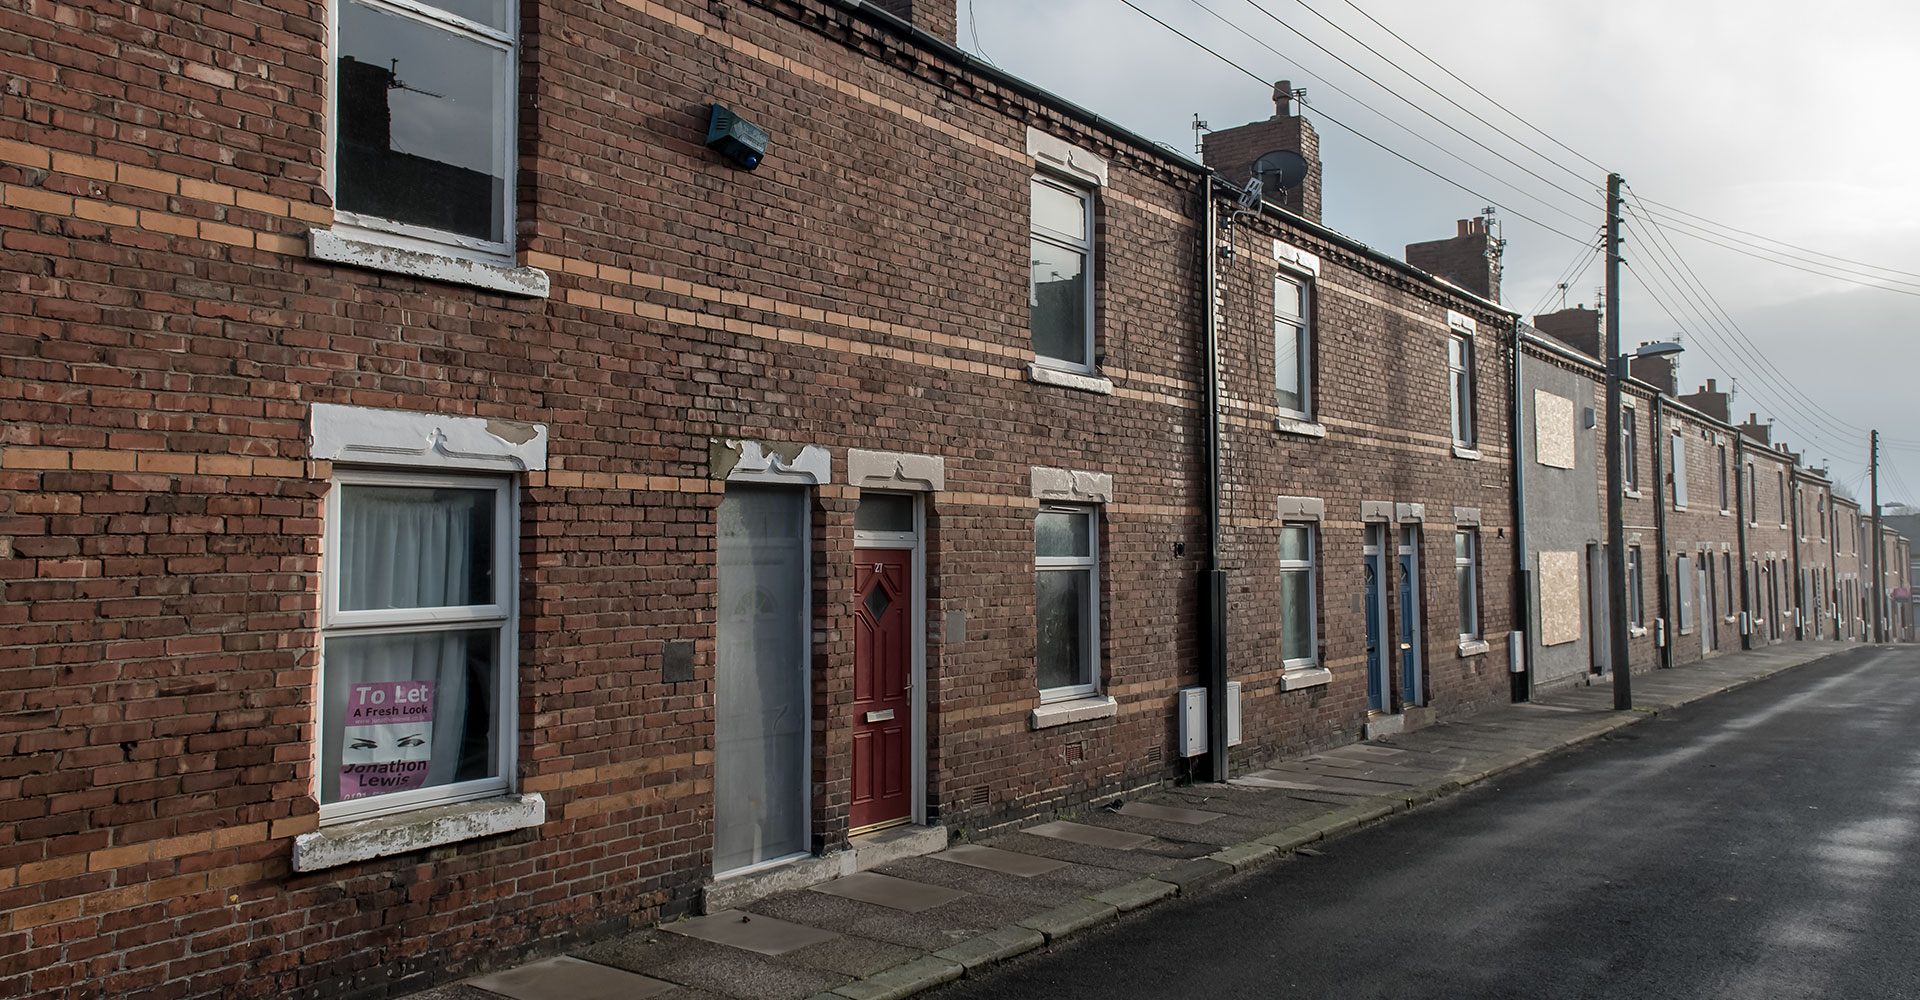 Social Justice: Housing injustice and the disposal of social housing. A row of terraced houses in Horden, County Durham.